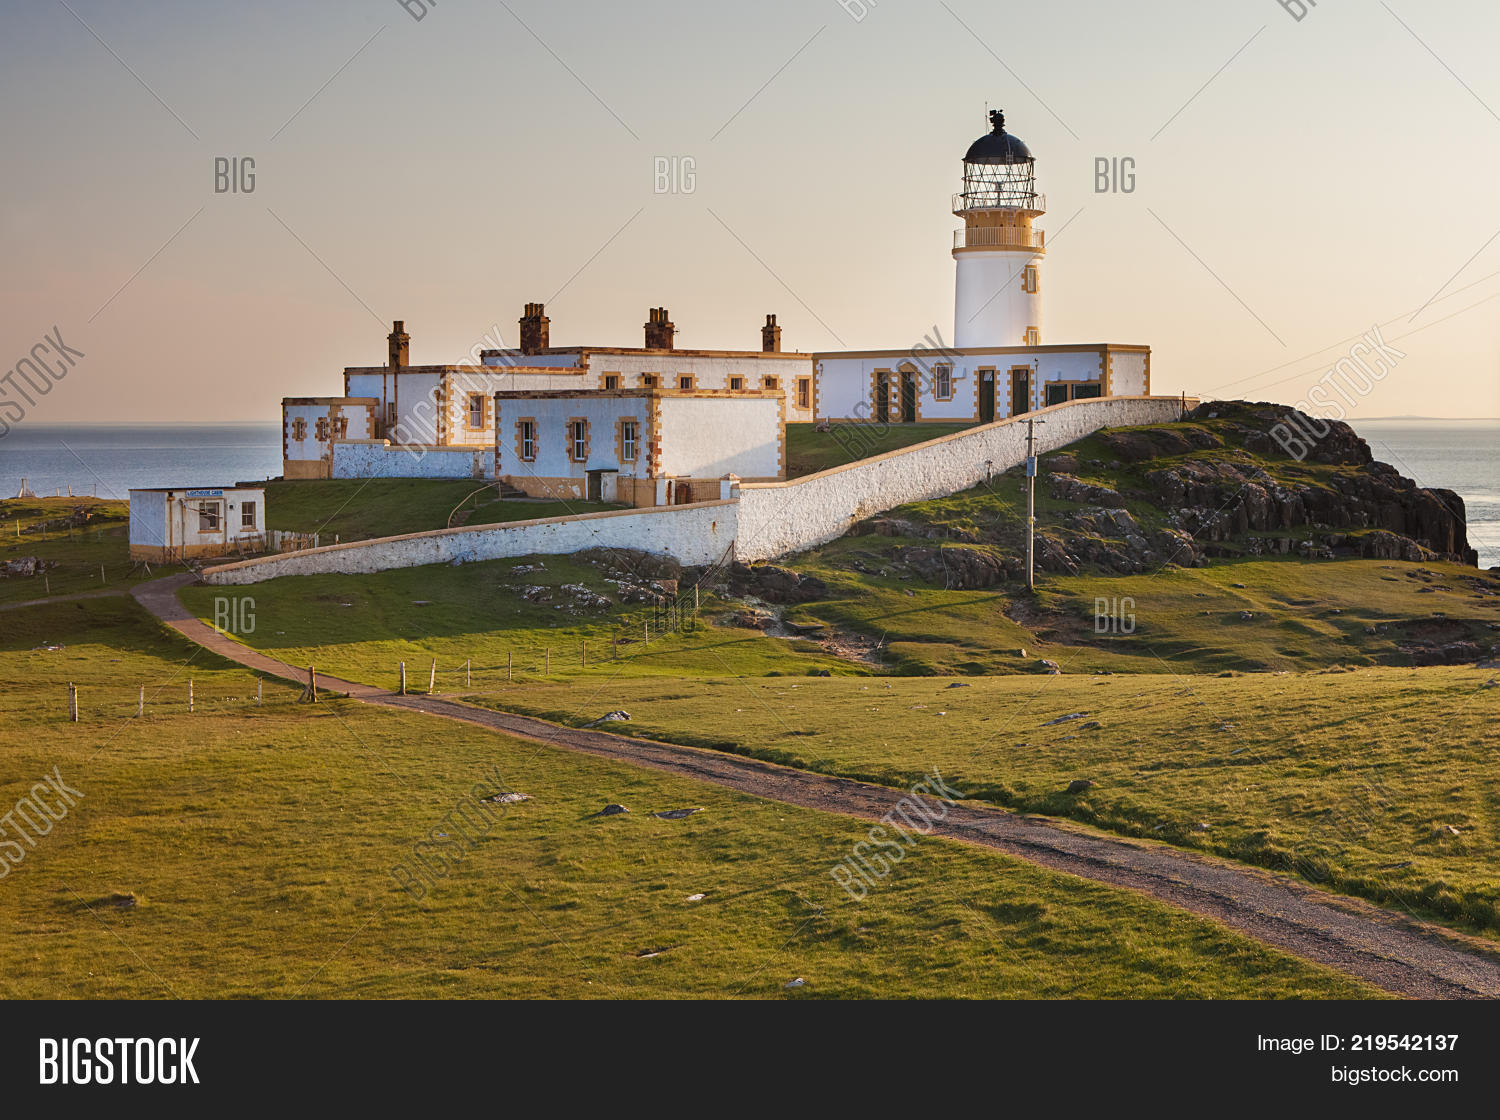 Look Lighthouse On Image & Photo (Free Trial) | Bigstock